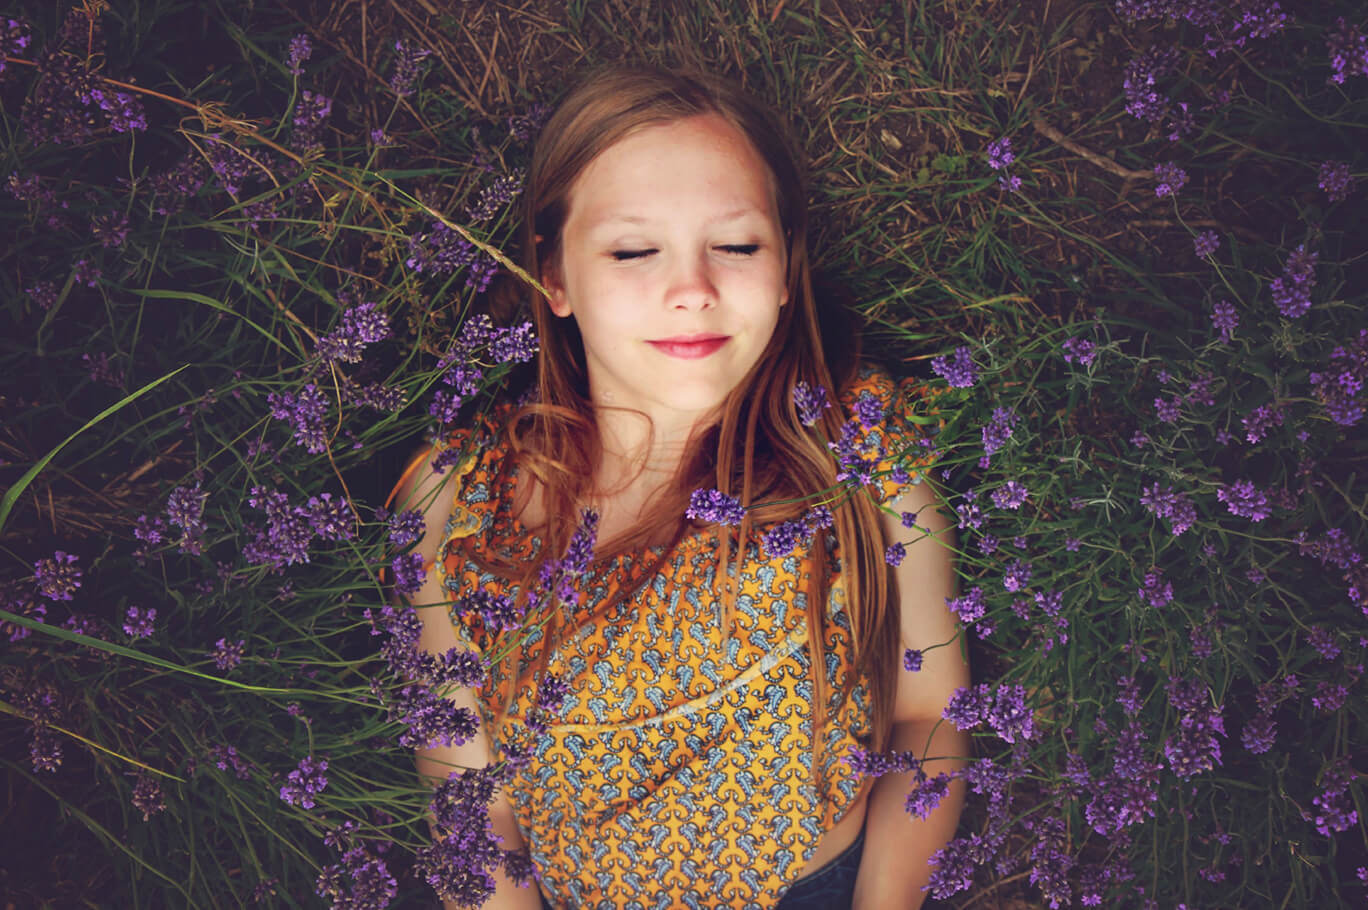 A girl that is sleeping in the back sleeping position in a field filled with purple flowers